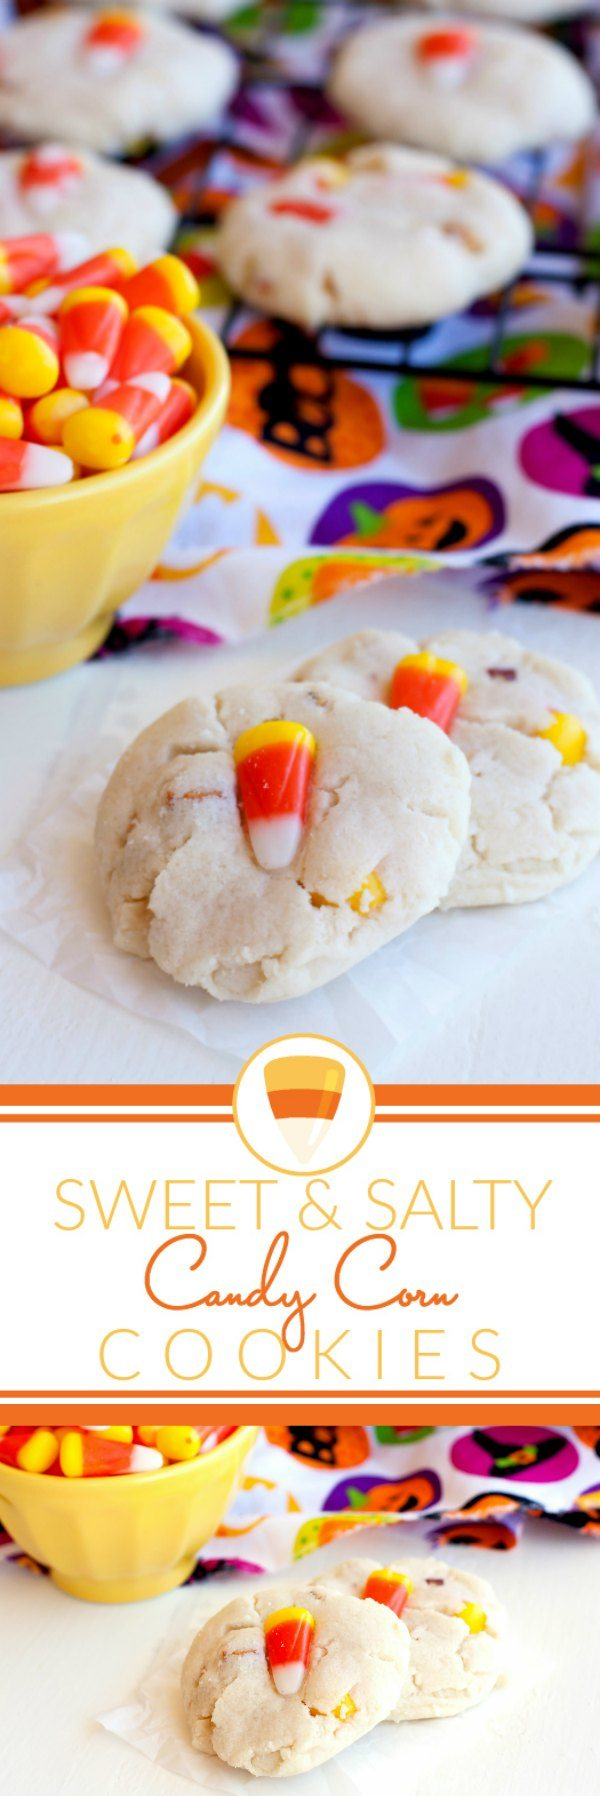 These Sweet & Salty Candy Corn Cookies are perfect for Fall treat. The base recipe is Paradise Bakery's world-famous sugar cookie recipe. via @foodfolksandfun